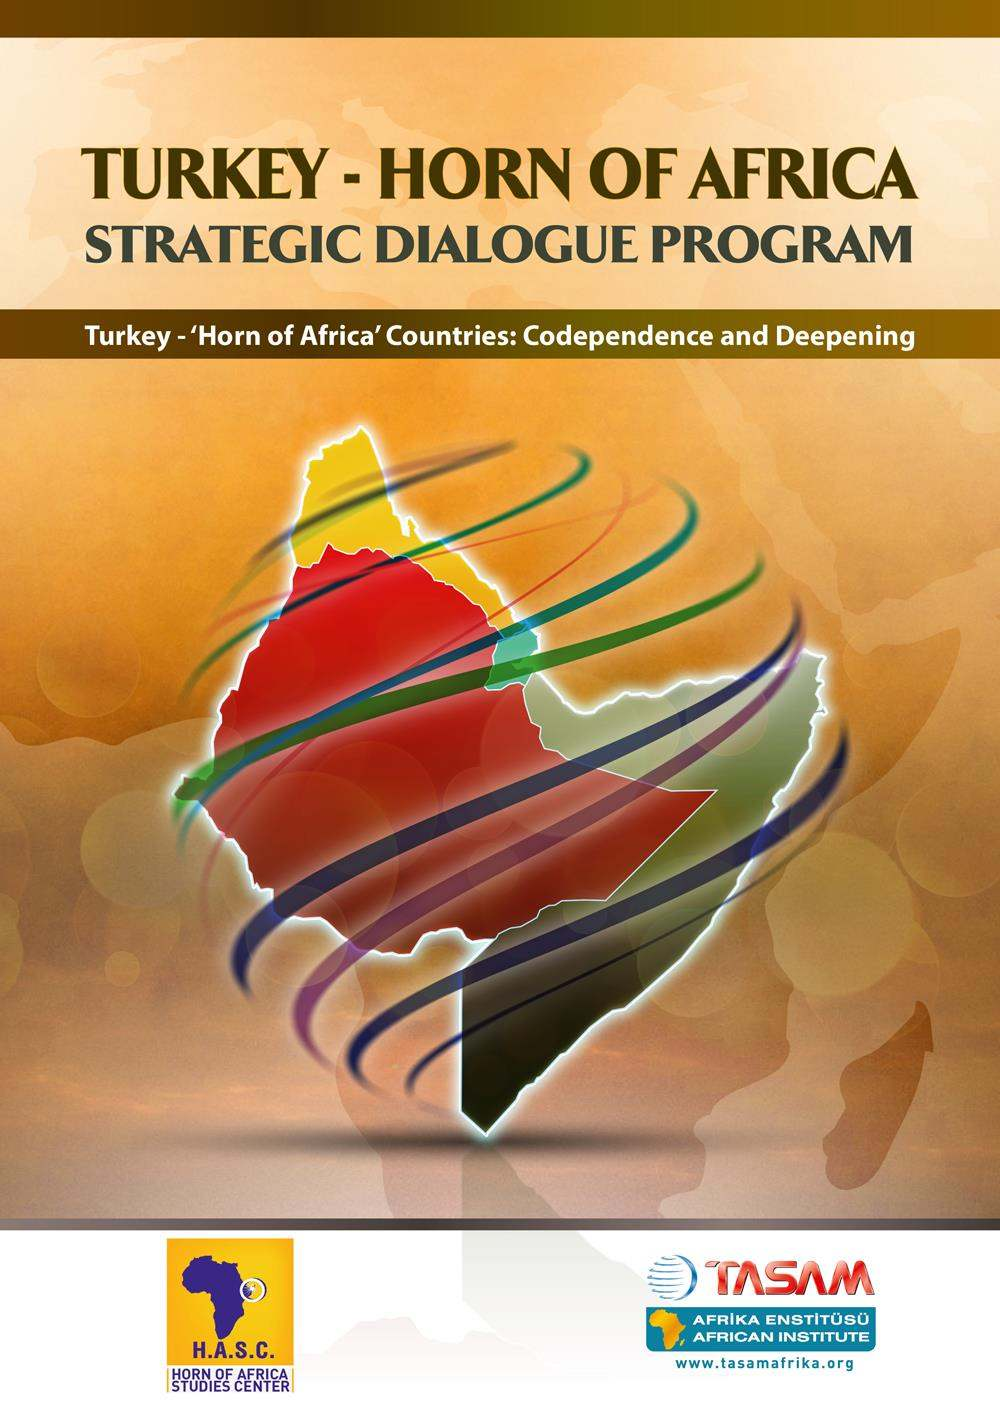 Turkey - Horn of Africa Strategic Dialog Program Istanbul Meeting